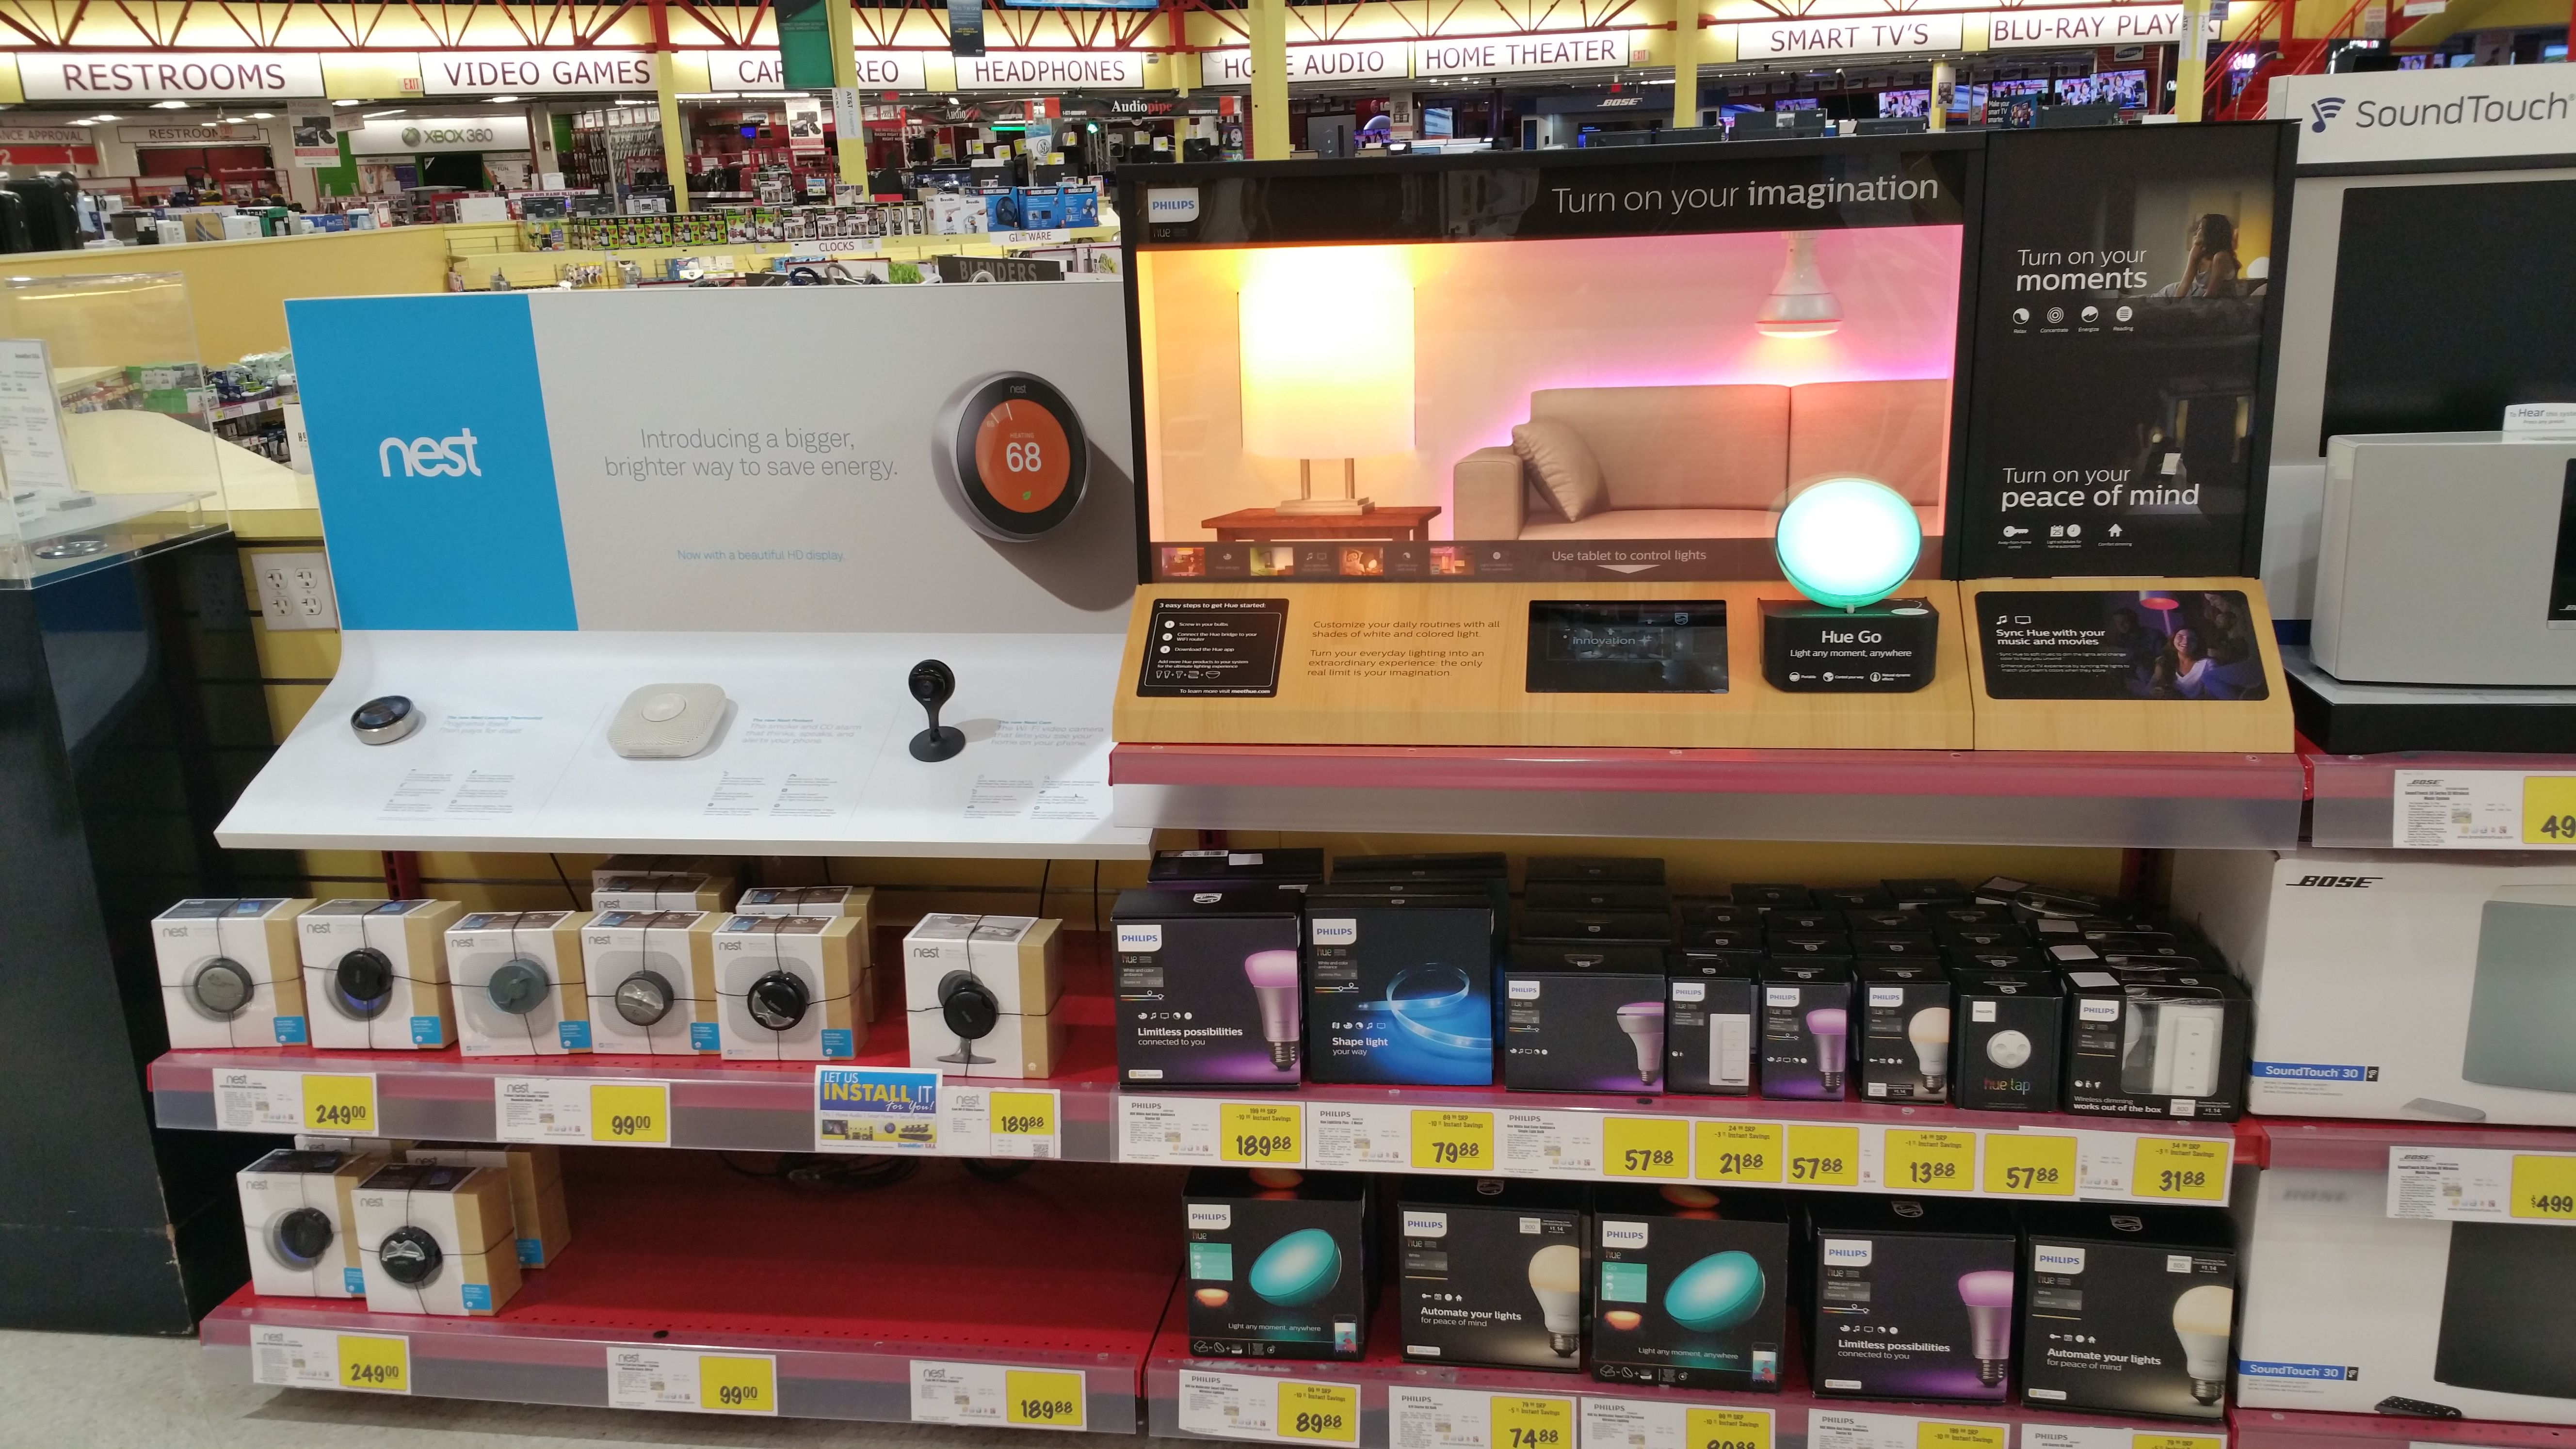 Philips Hue Lighting Is At Brandsmart Usa Led Bulbs With Dimming Brightening Features At Your Fingertips Mobile Contro Hue Philips Home Automation Led Bulb